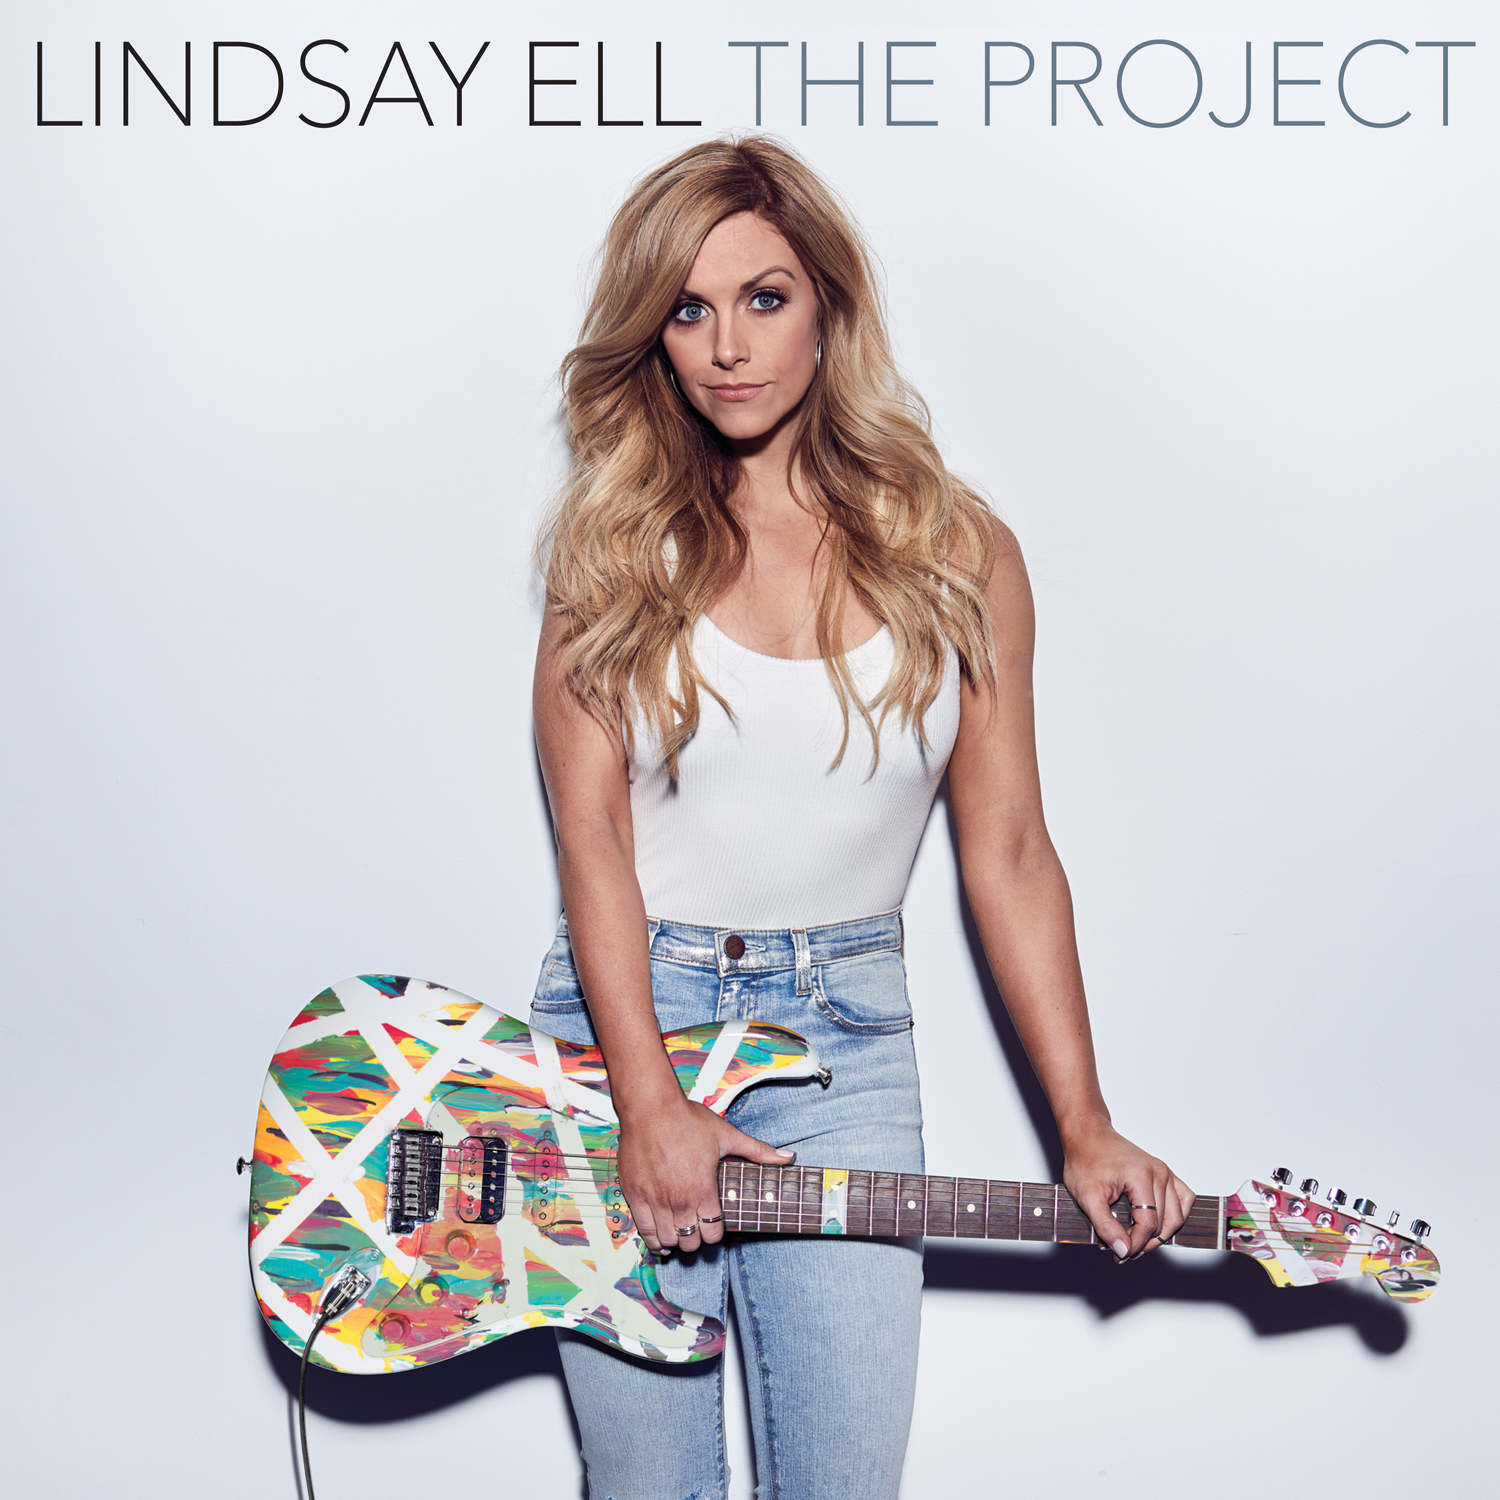 The Project UK Album Cover